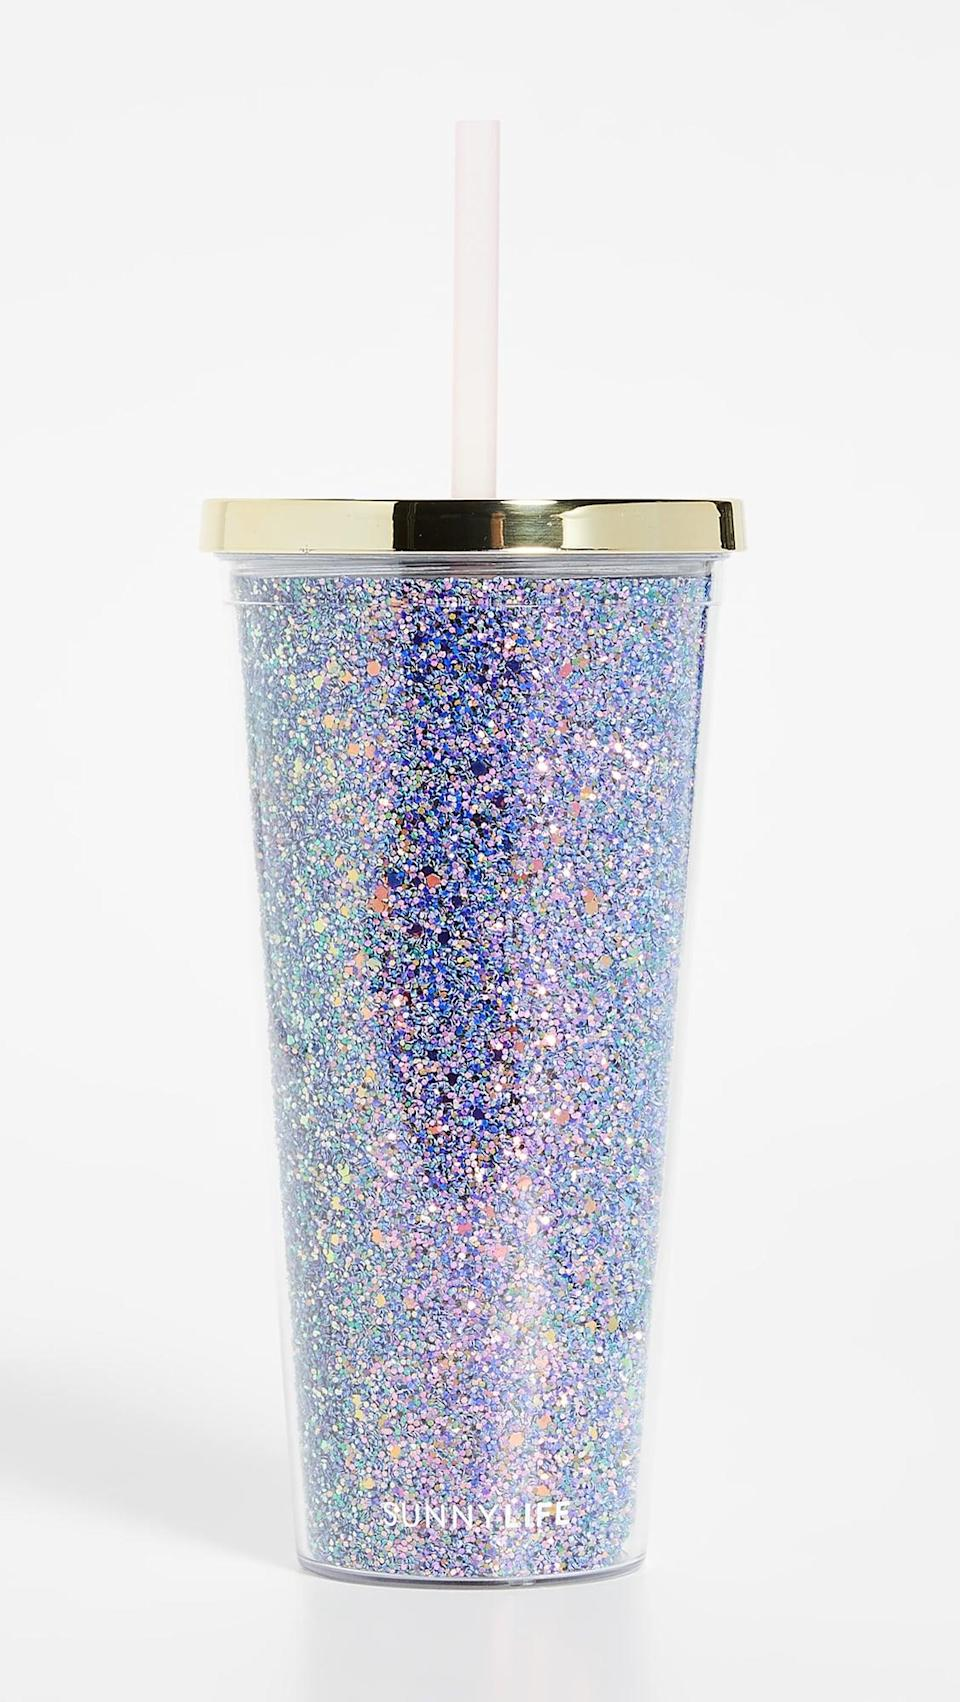 "<p>We all know someone who needs this <a href=""https://www.popsugar.com/buy/SunnyLife-Mermaid-Tumbler-526886?p_name=SunnyLife%20Mermaid%20Tumbler&retailer=shopbop.com&pid=526886&price=16&evar1=fab%3Aus&evar9=36291197&evar98=https%3A%2F%2Fwww.popsugar.com%2Ffashion%2Fphoto-gallery%2F36291197%2Fimage%2F46982968%2FSunnyLife-Mermaid-Tumbler&list1=shopping%2Choliday%2Cwinter%2Cgift%20guide%2Cwinter%20fashion%2Choliday%20fashion%2Cfashion%20gifts&prop13=mobile&pdata=1"" rel=""nofollow noopener"" class=""link rapid-noclick-resp"" target=""_blank"" data-ylk=""slk:SunnyLife Mermaid Tumbler"">SunnyLife Mermaid Tumbler</a> ($16).</p>"